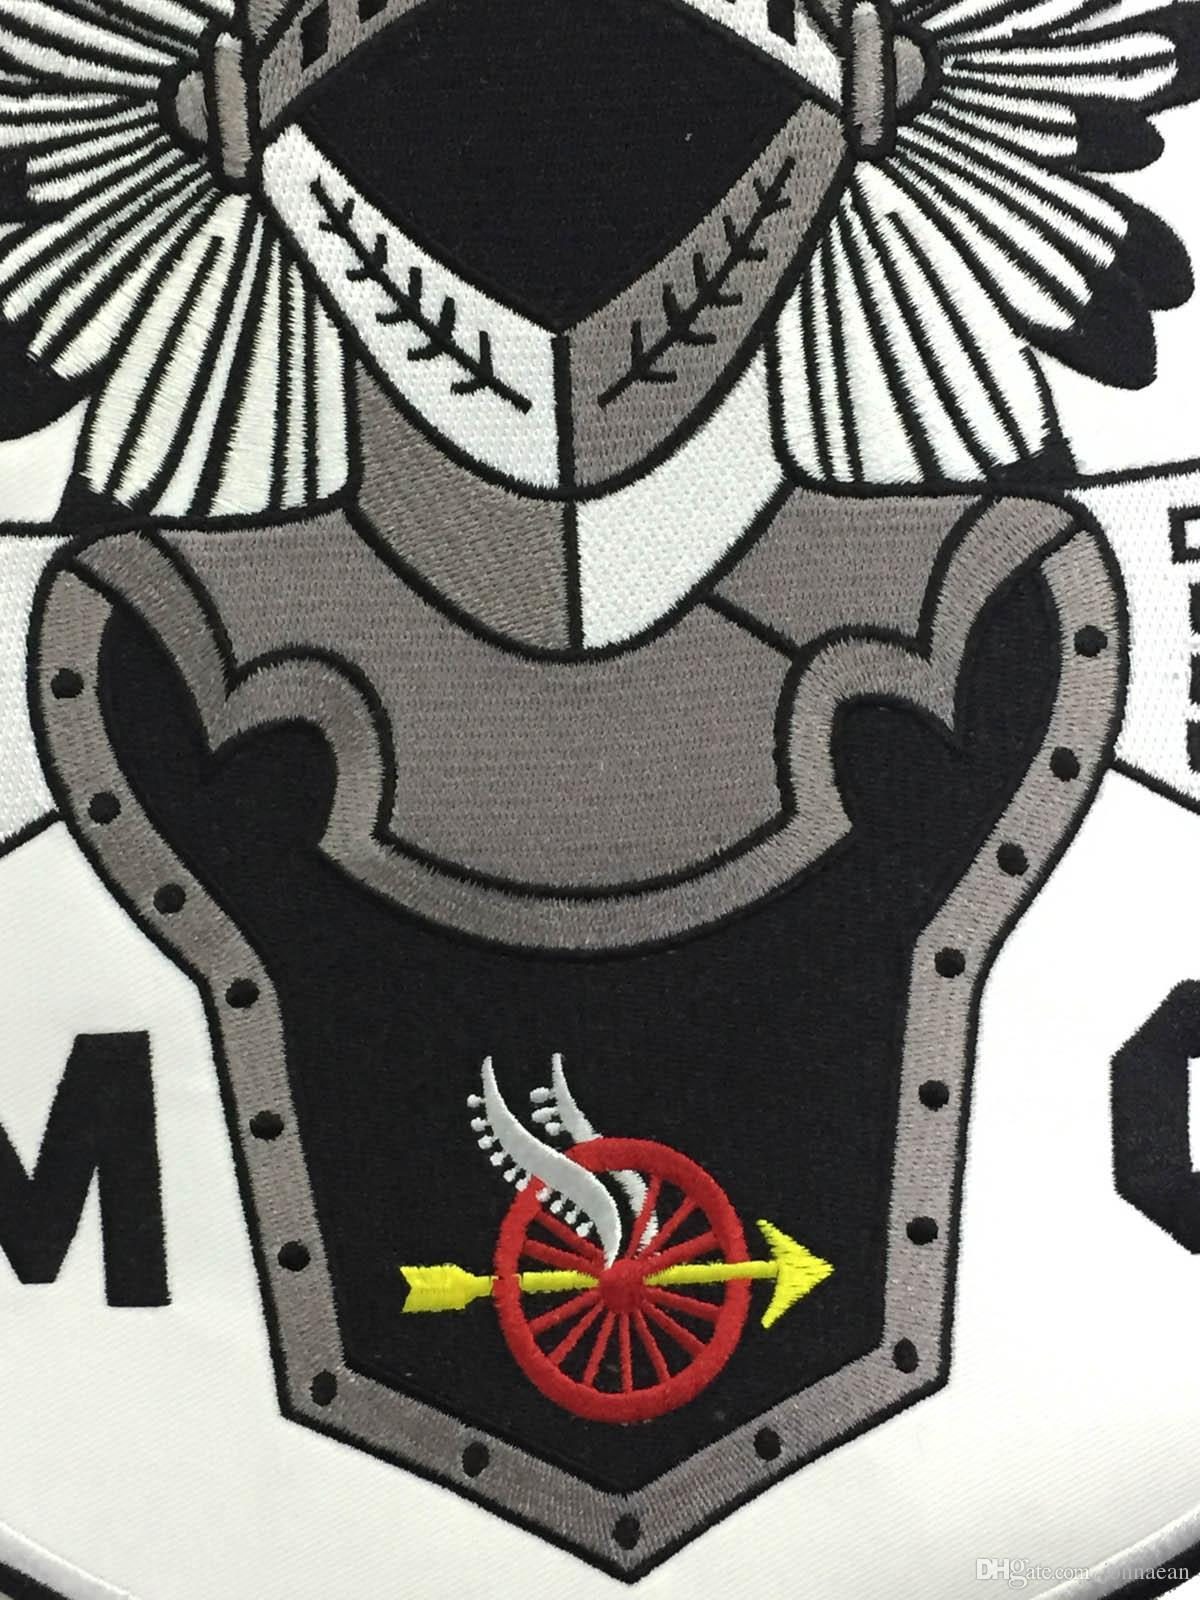 HOT SALE COOLEST INDIAN KNIGHTS MC BACK EMBROIDERY PATCH MOTORCYCLE CLUB VEST OUTLAW BIKER MC COLORS PATCH